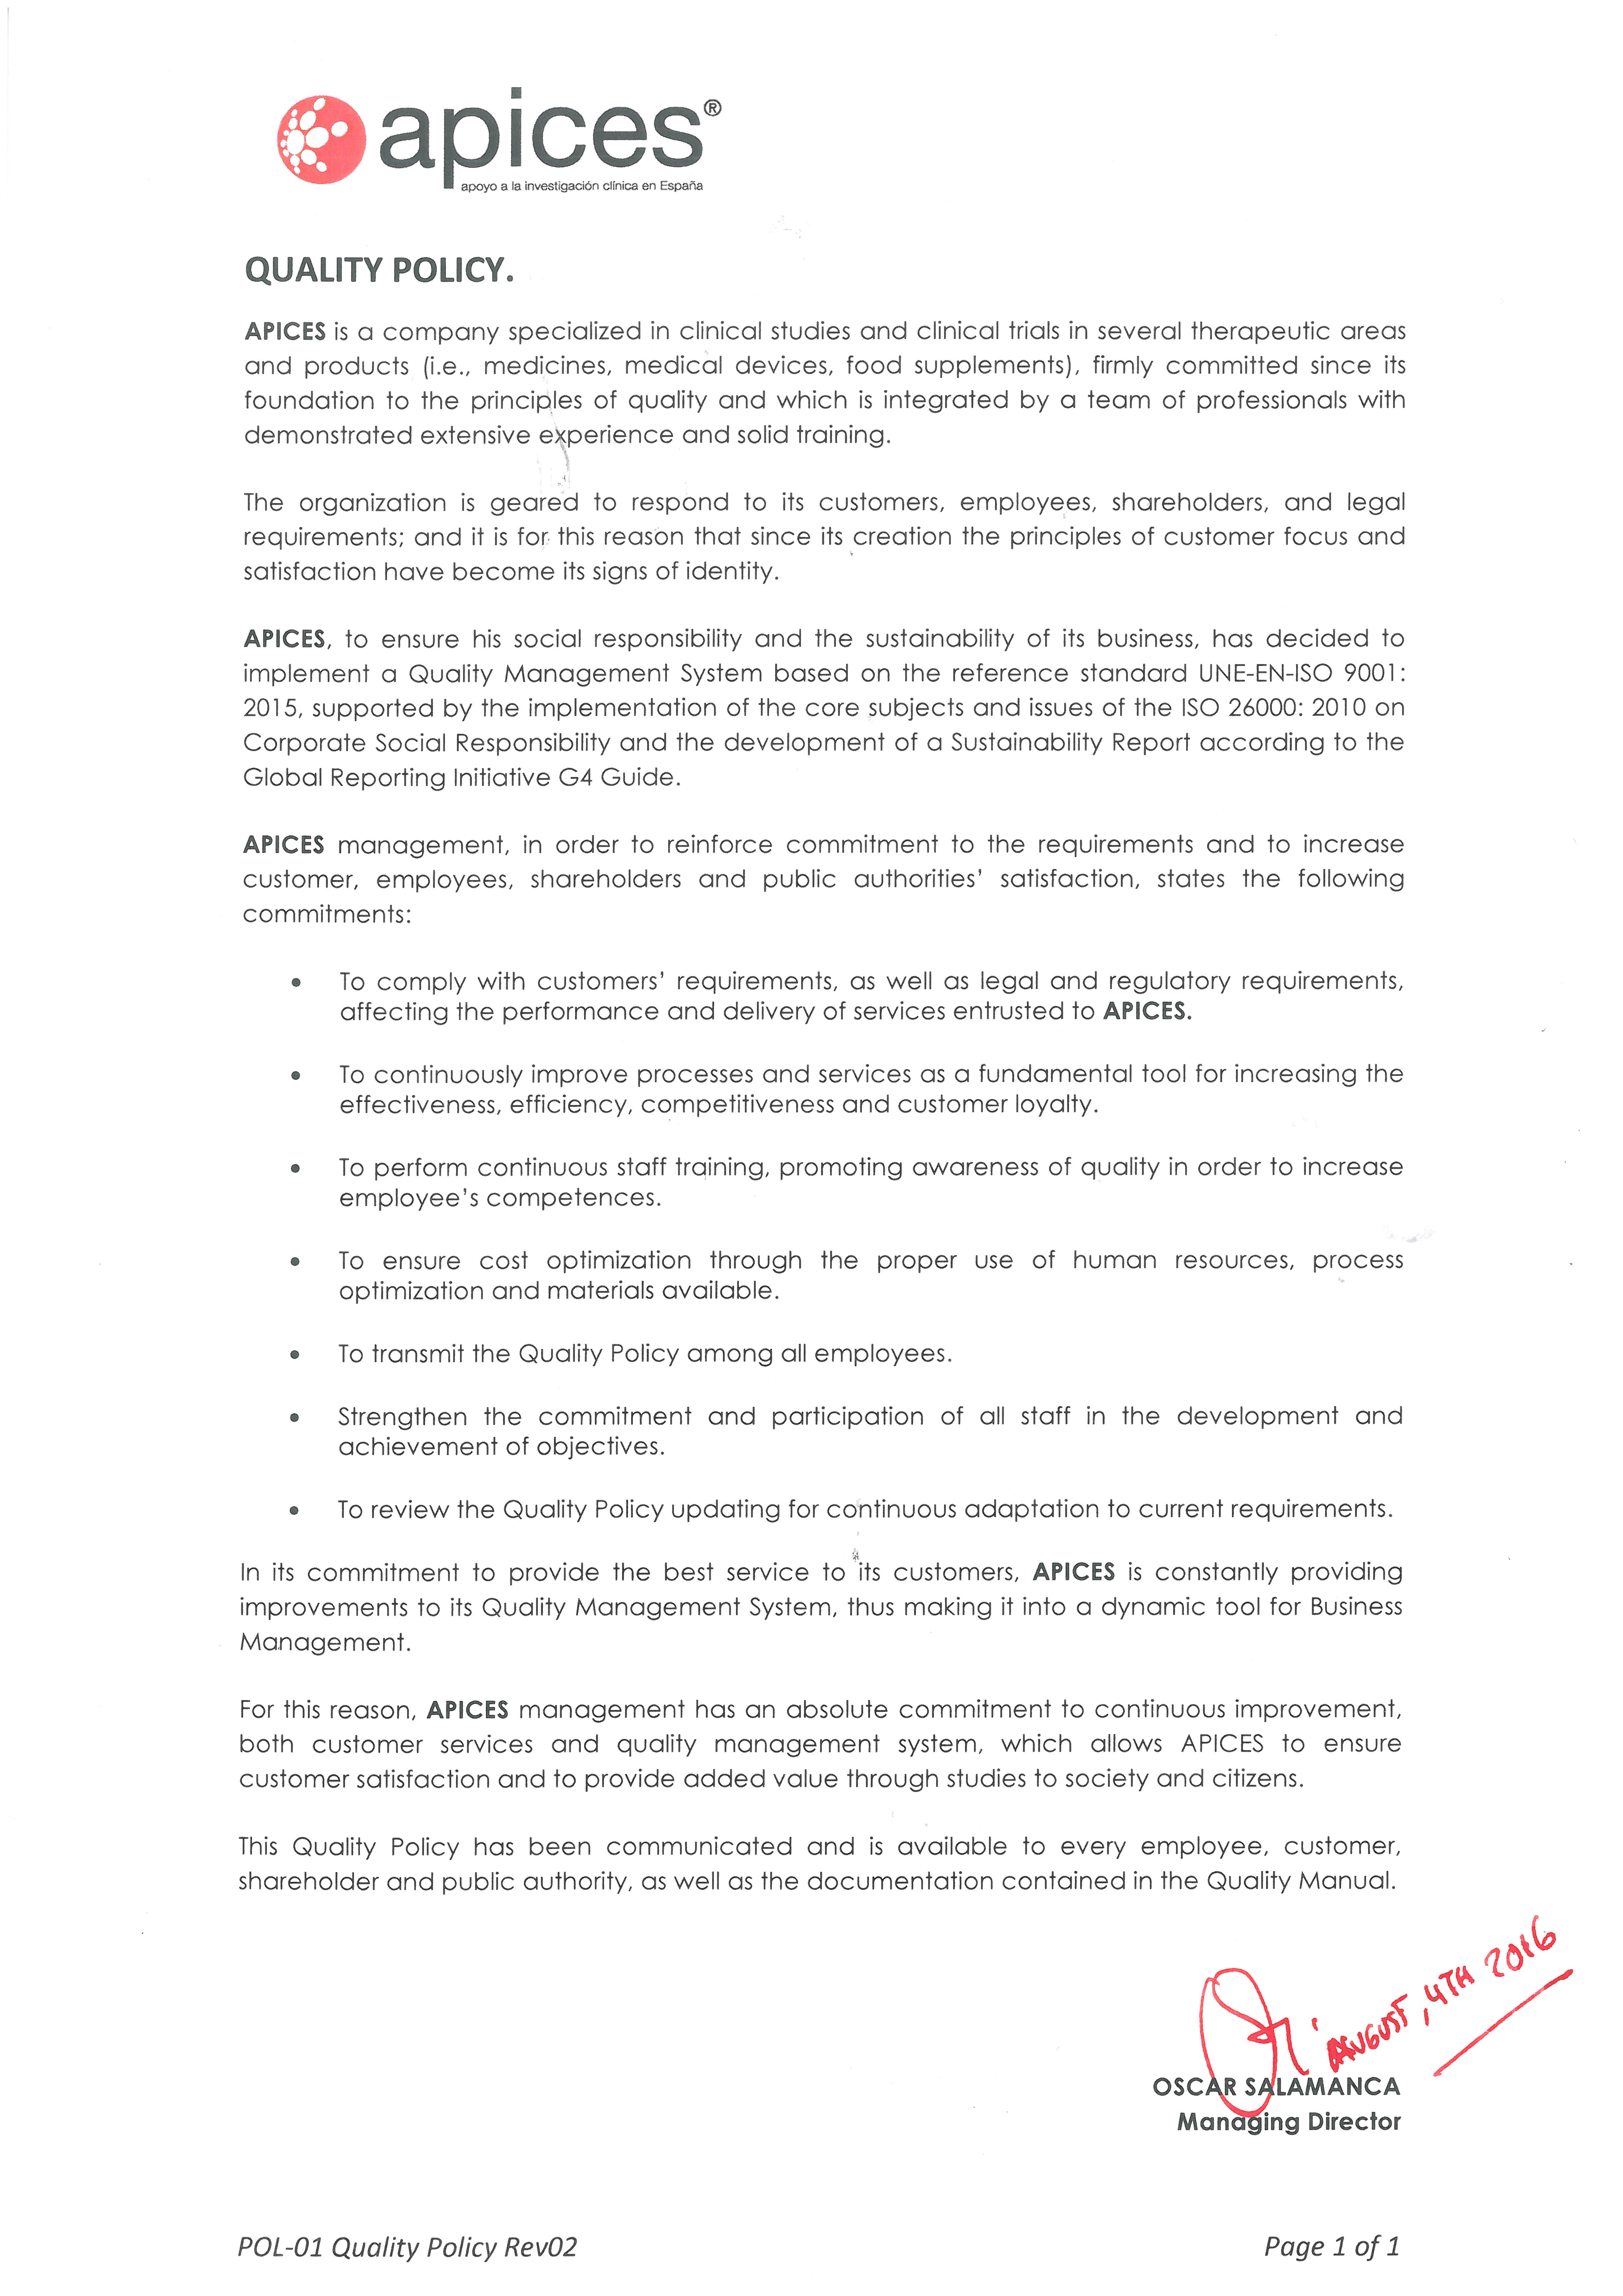 POL-01 APICES Quality Policy EN